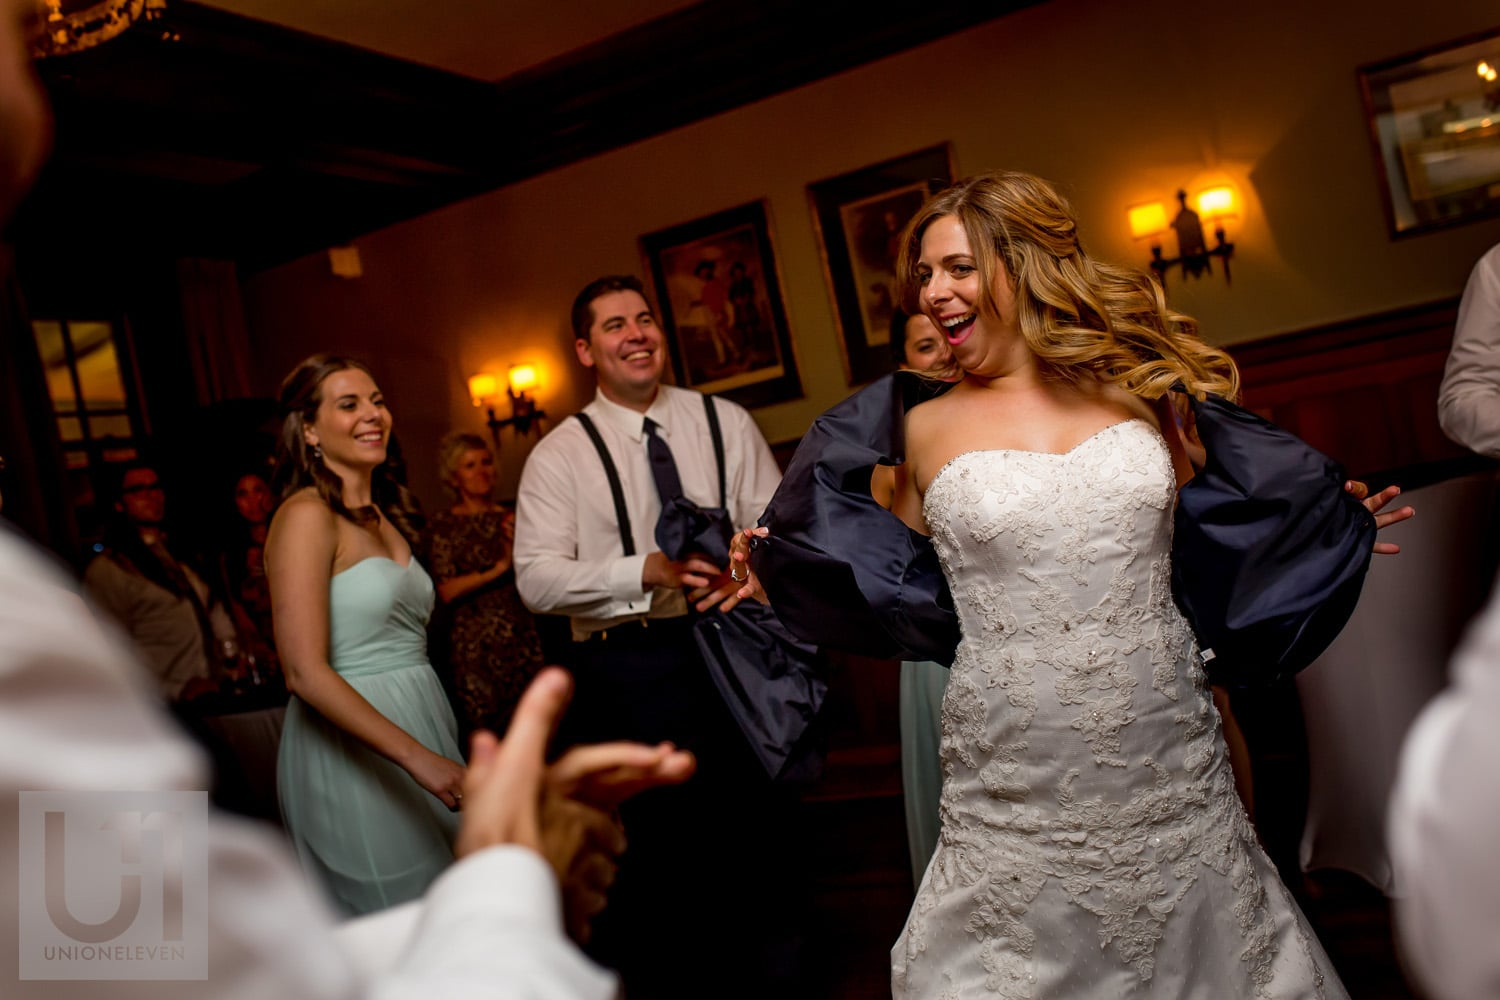 bride dancing with groomsman's vest surrounded by wedding party at reception